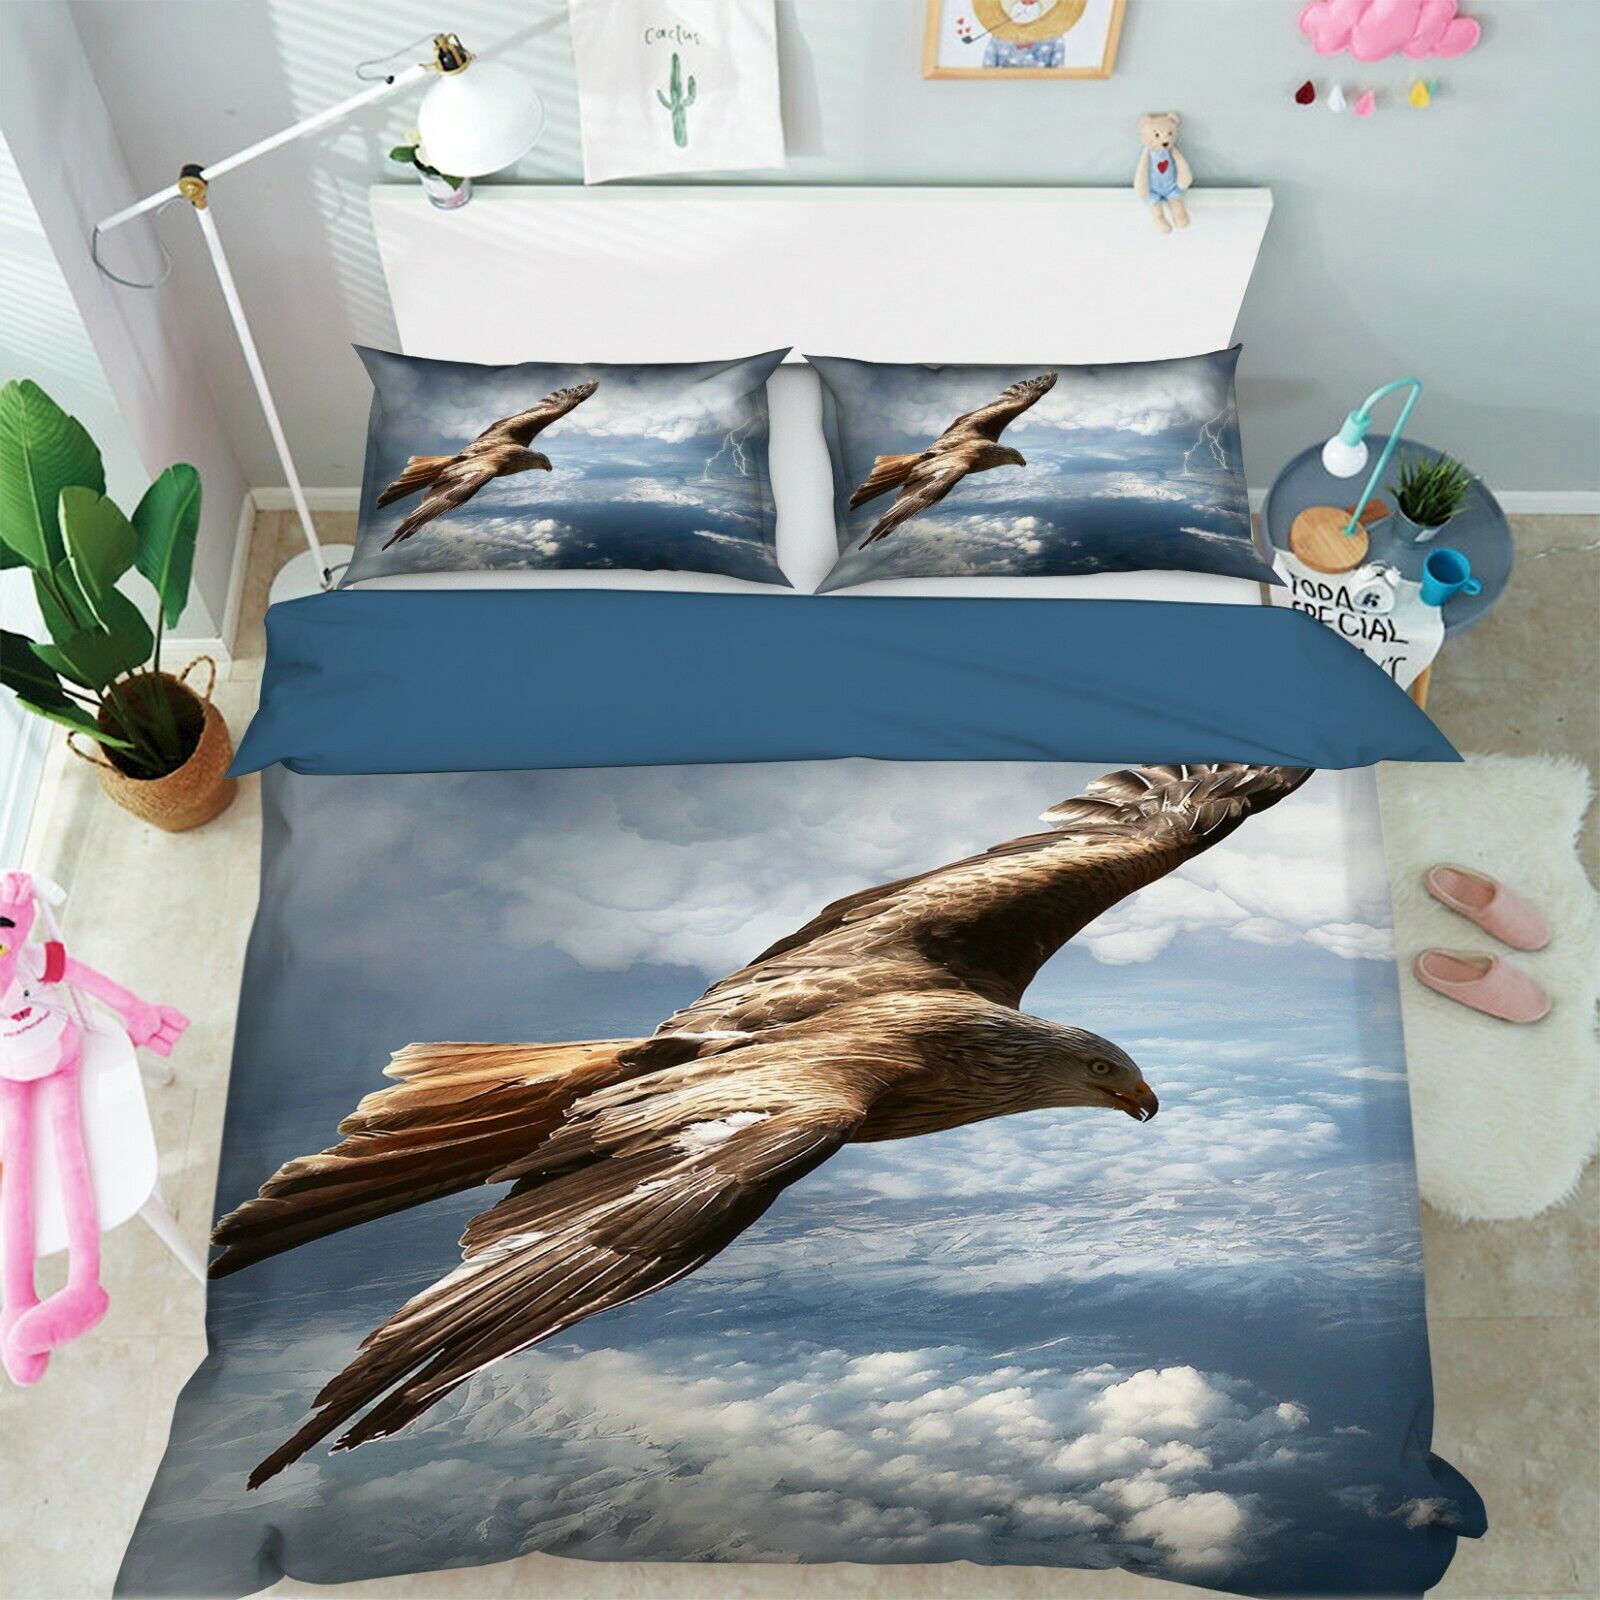 3D Eagle Clouds R122 Animal Bed Pillowcases Quilt Duvet Cover Queen King Zoe